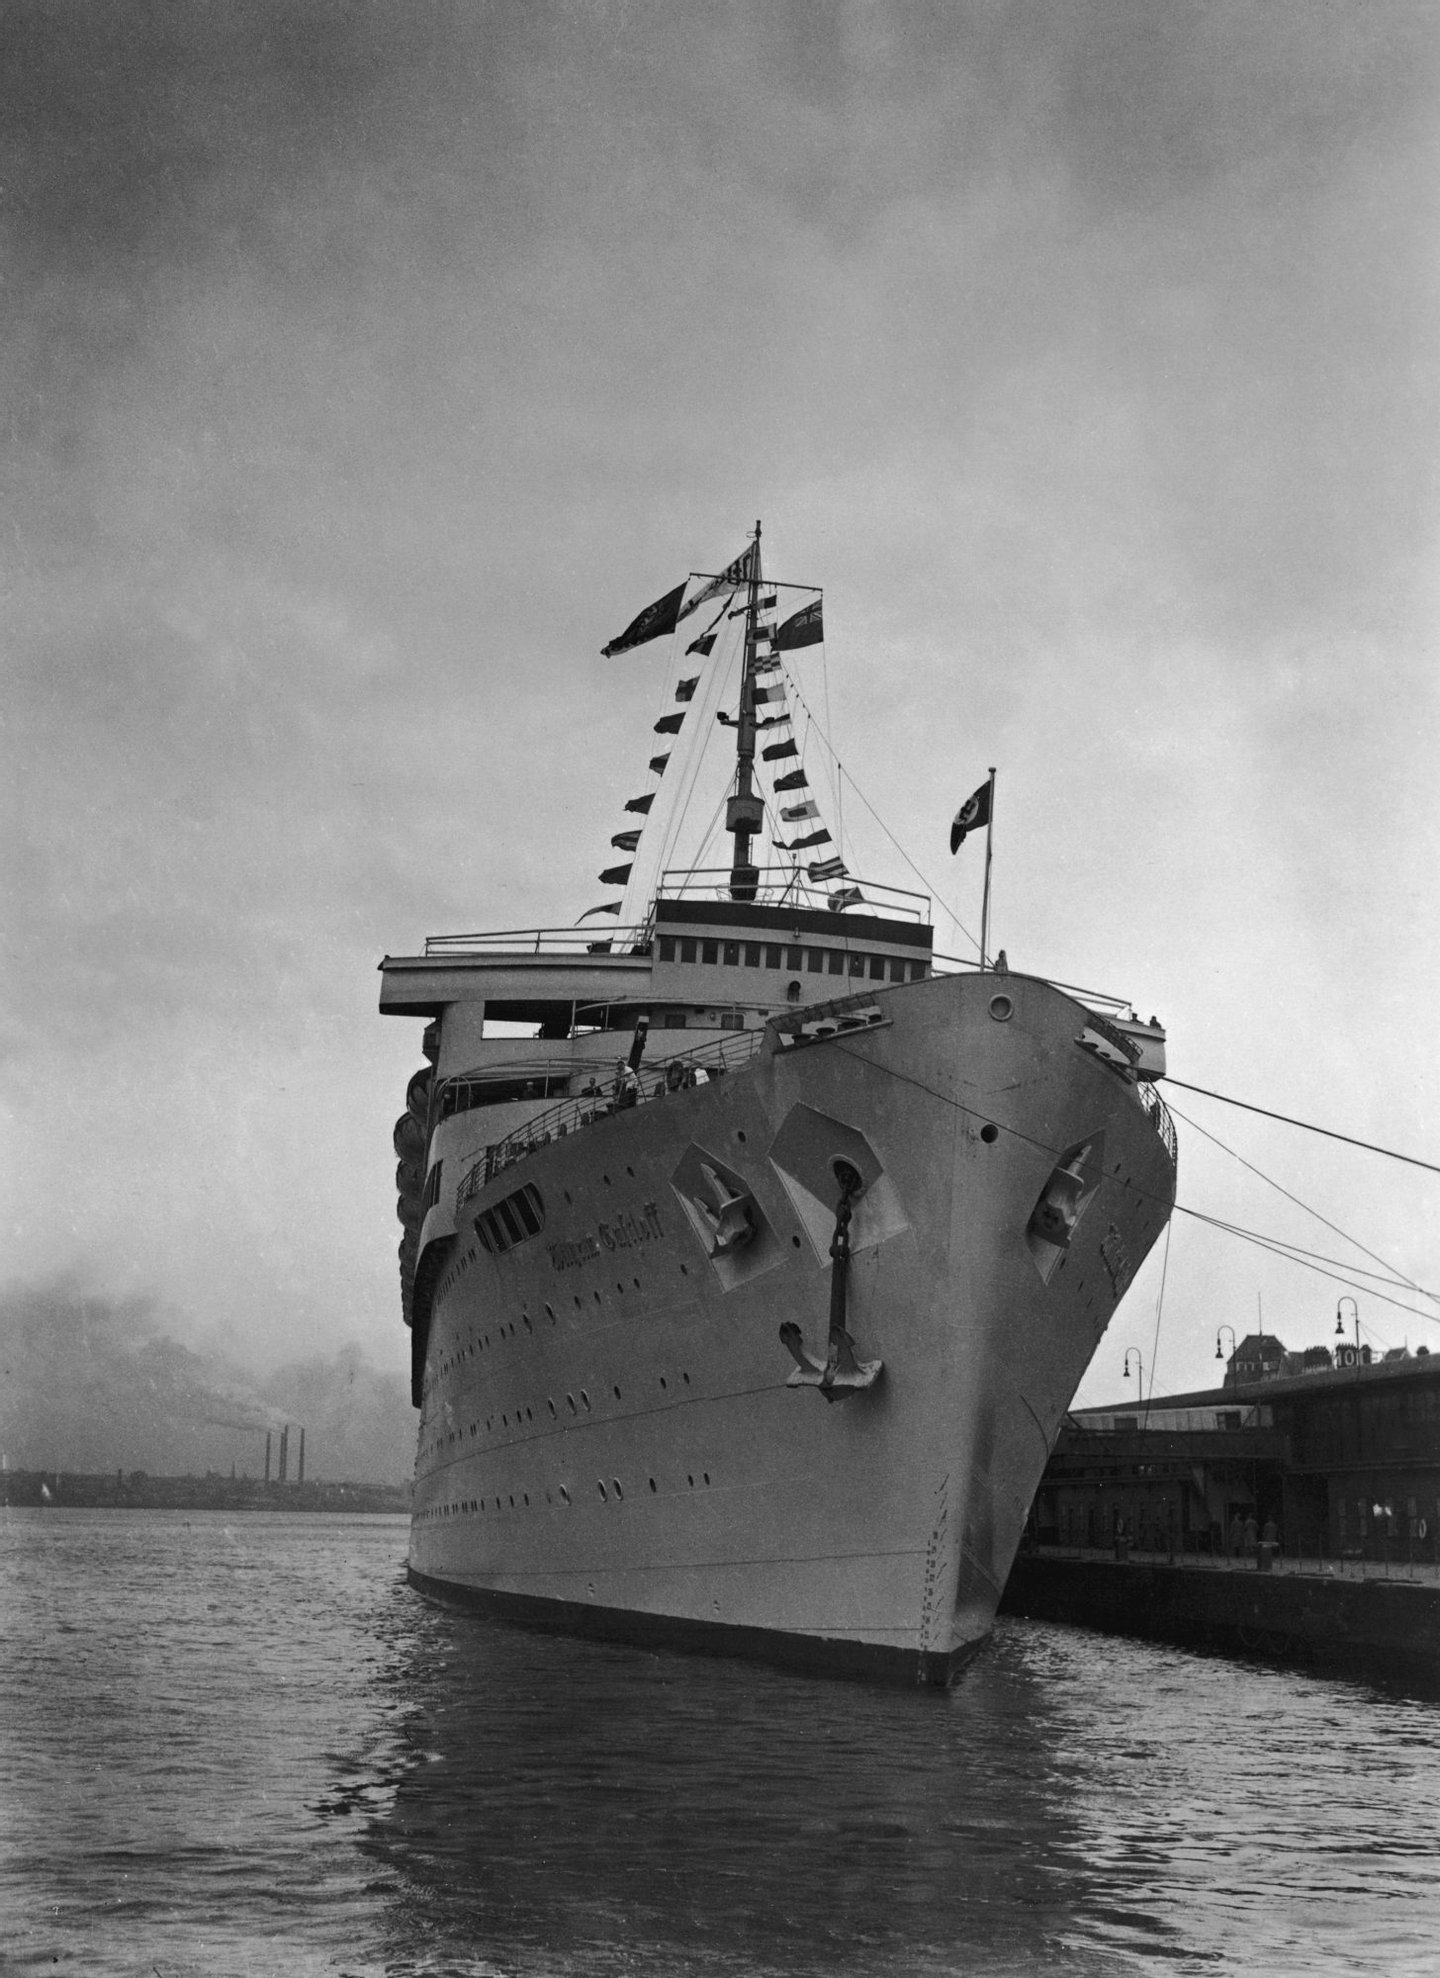 The German luxury liner Wilhelm Gustloff at Tilbury, 10th April 1938. The ship is about to take German residents of the United Kingdom into international waters, where they can vote in the plebiscite on the annexation of Austria. (Photo by Harrison/Topical Press Agency/Hulton Archive/Getty Images)